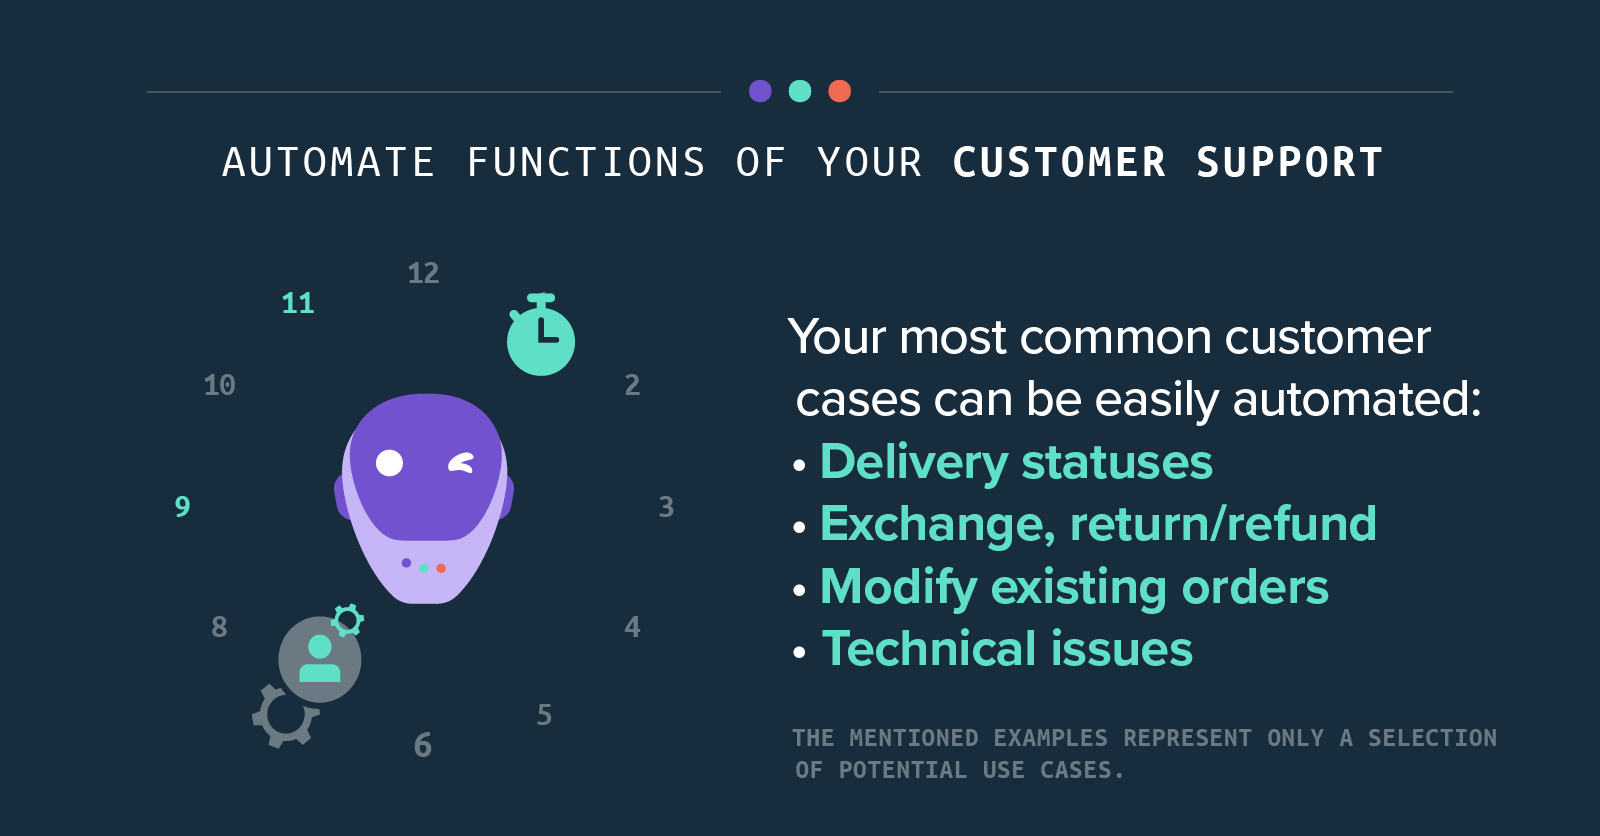 automate functions of your customer support - Your most common customer cases can be easily automated: • Delivery statuses • Exchange, return/refund • Modify existing orders • Technical issues